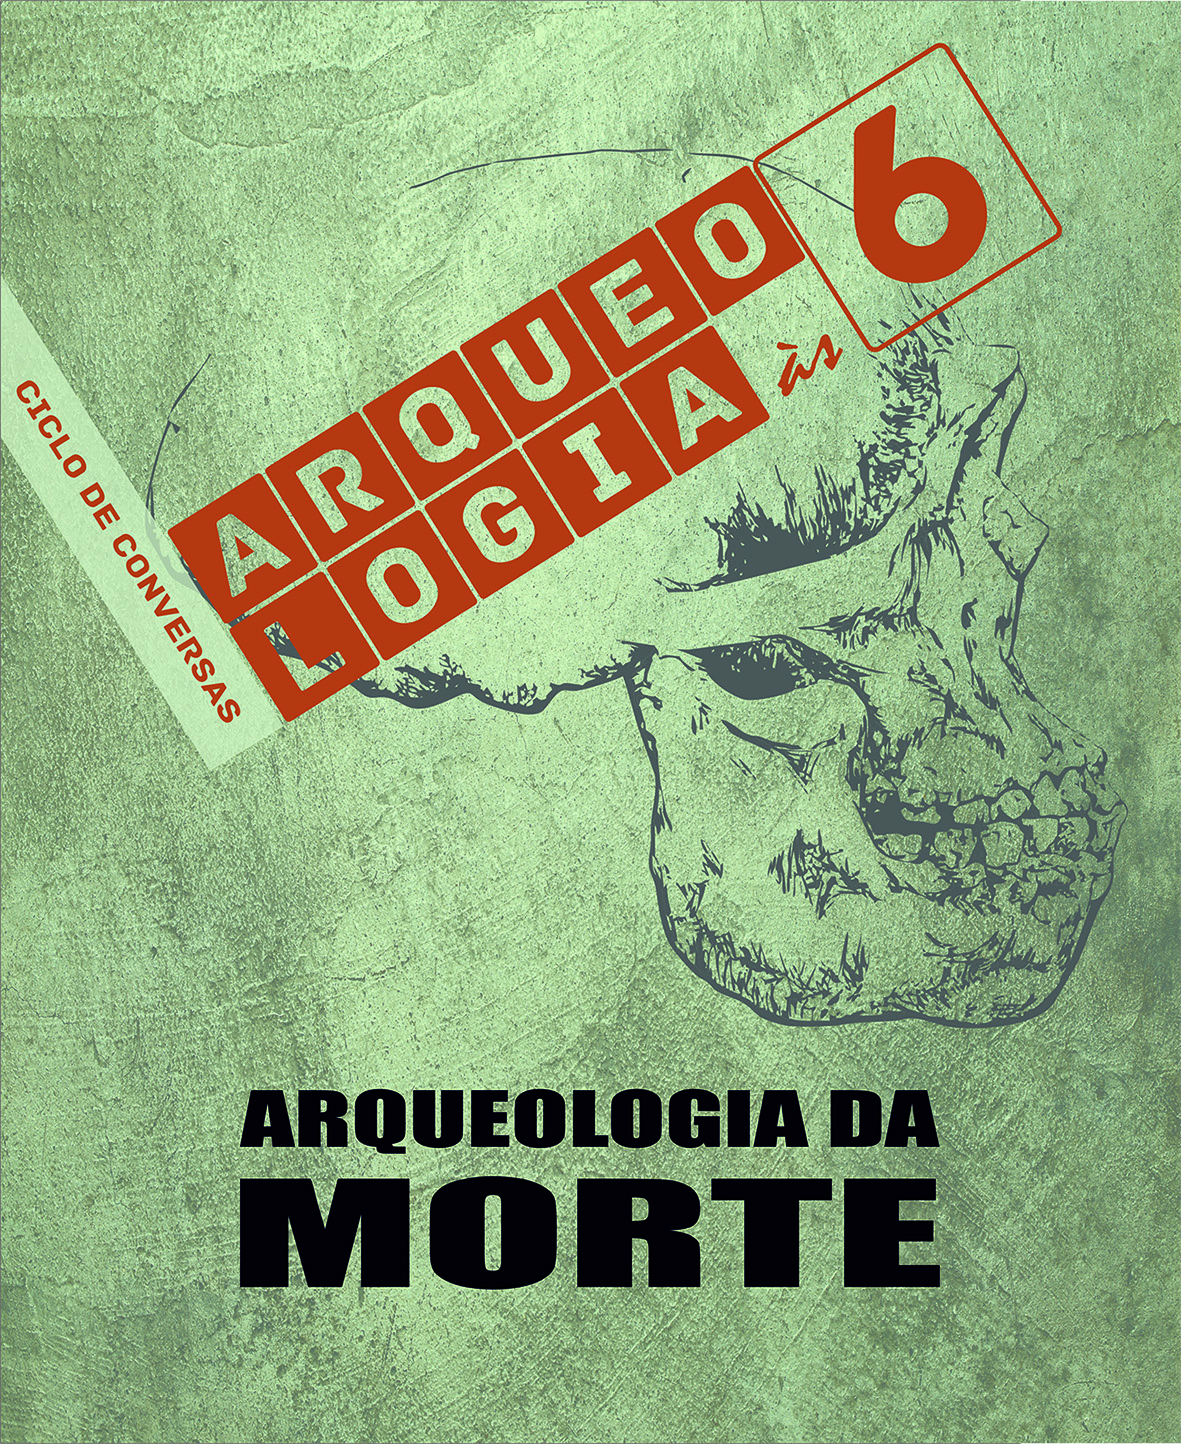 Arqueologia às 6 – session 5 podcast available [portuguese]